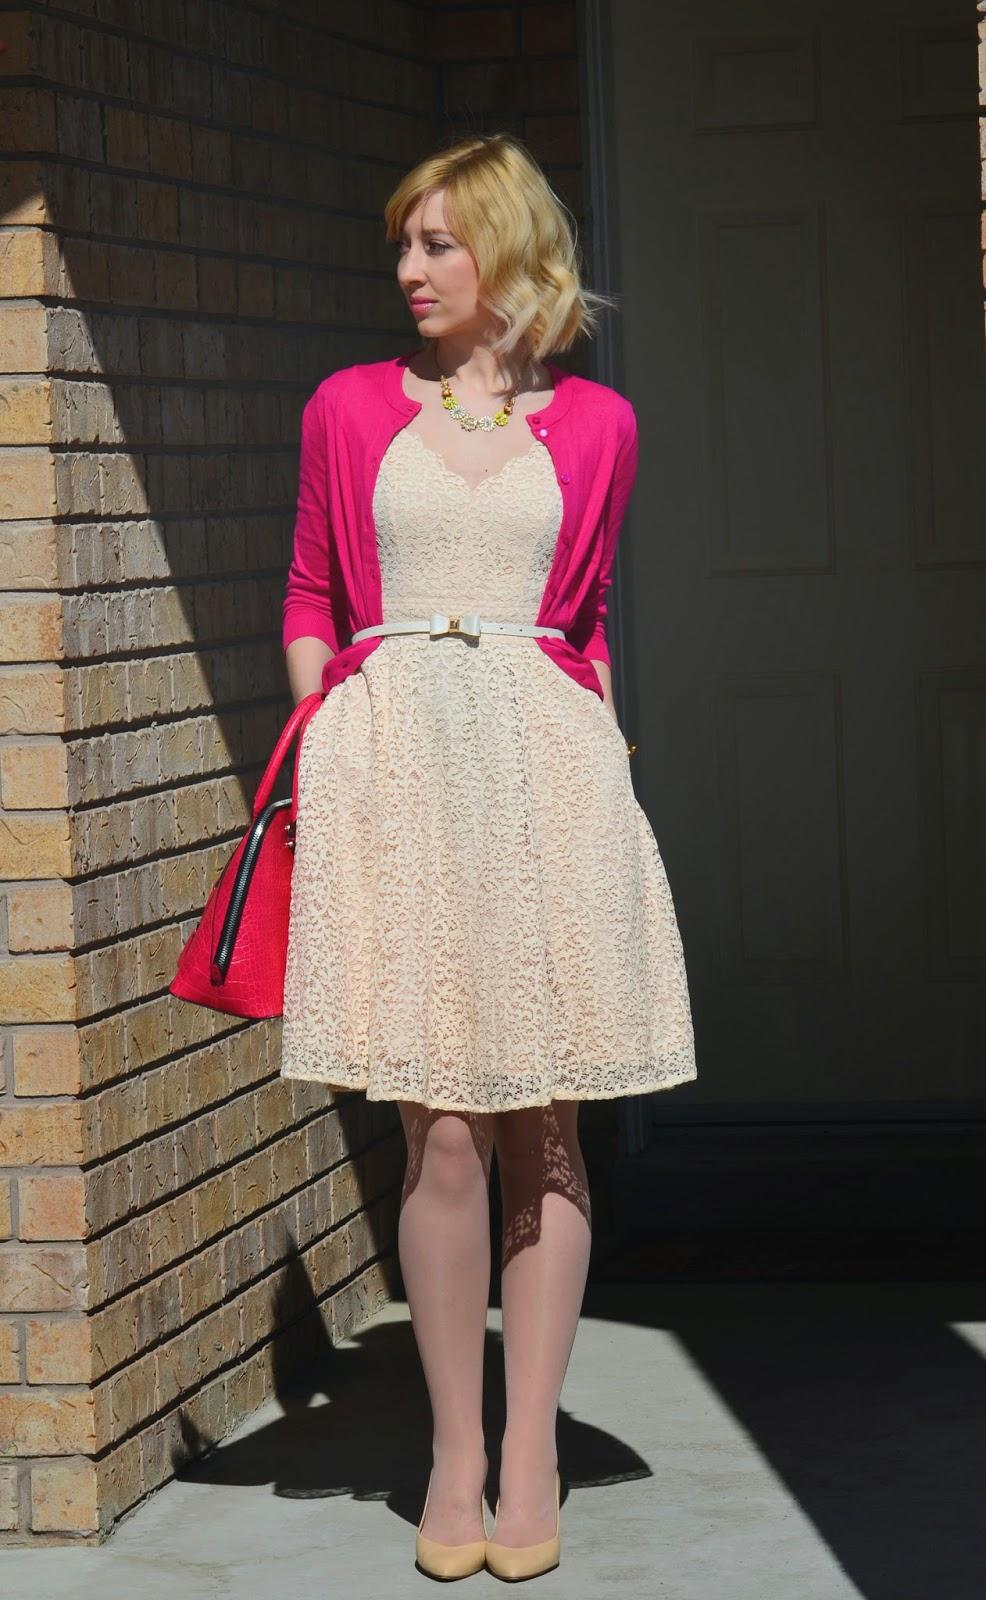 Style, OOTD, eShakti, lace dress, aline dress, spring style, J. Crew, Kate Spade, Forever21, Zara, lace dress style, bright cardigan style, bow style, bow belt, bow earrings, eshakti dress,